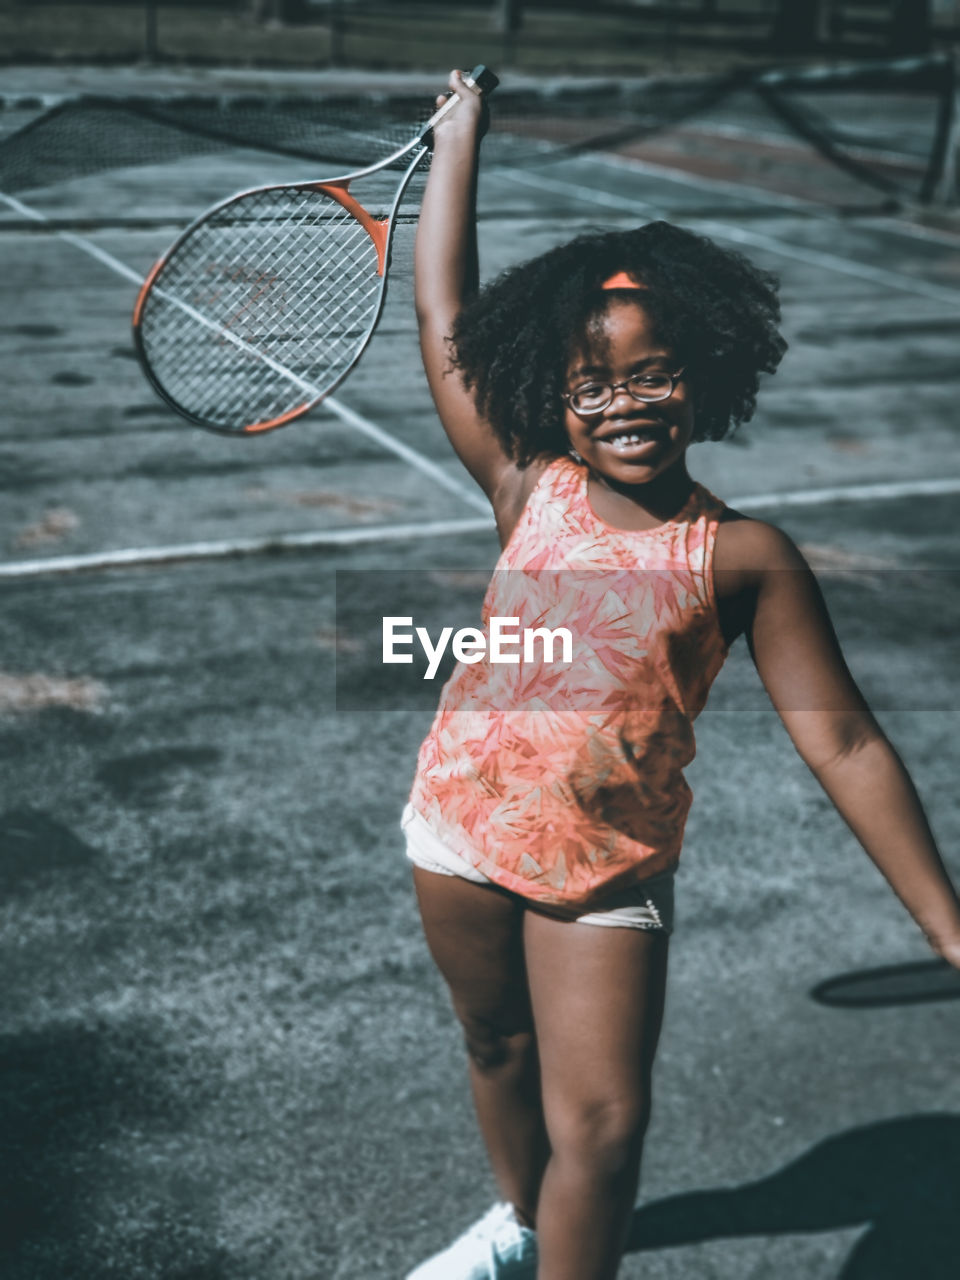 Smiling Girl Holding Racket While Standing On Court During Sunny Day